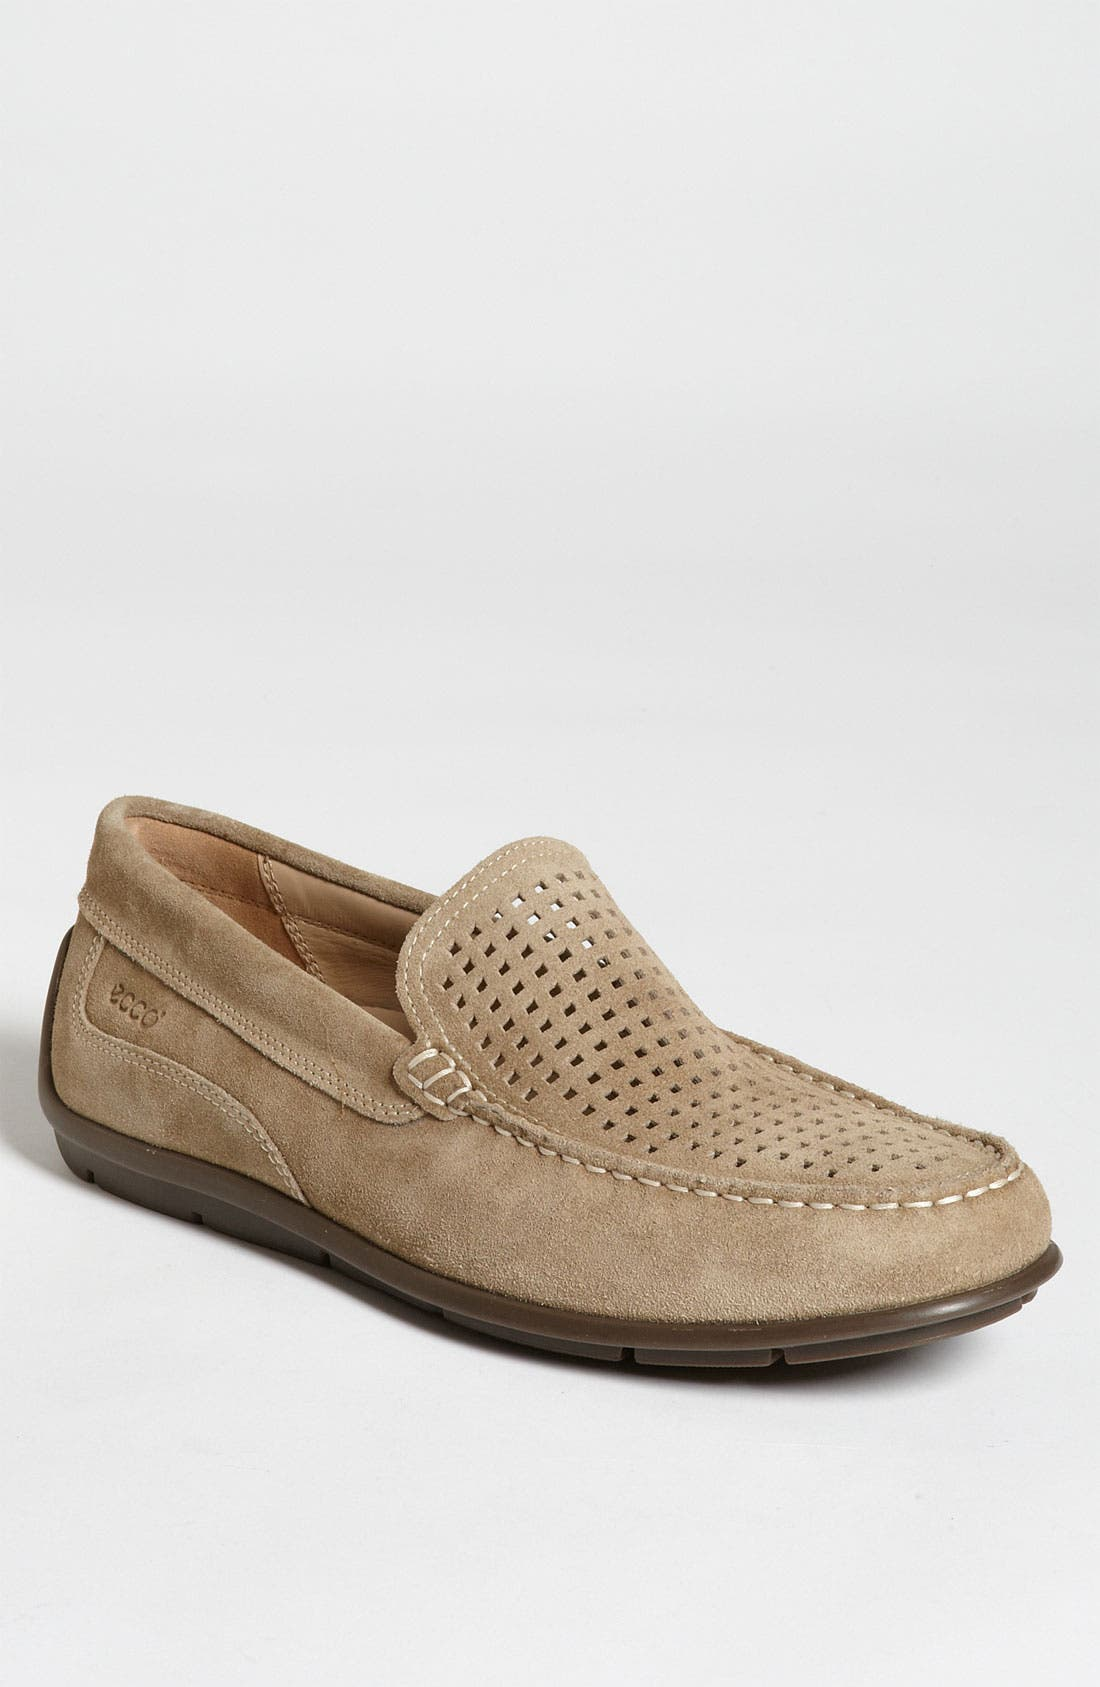 Alternate Image 1 Selected - ECCO 'Classic Moc' Slip-On